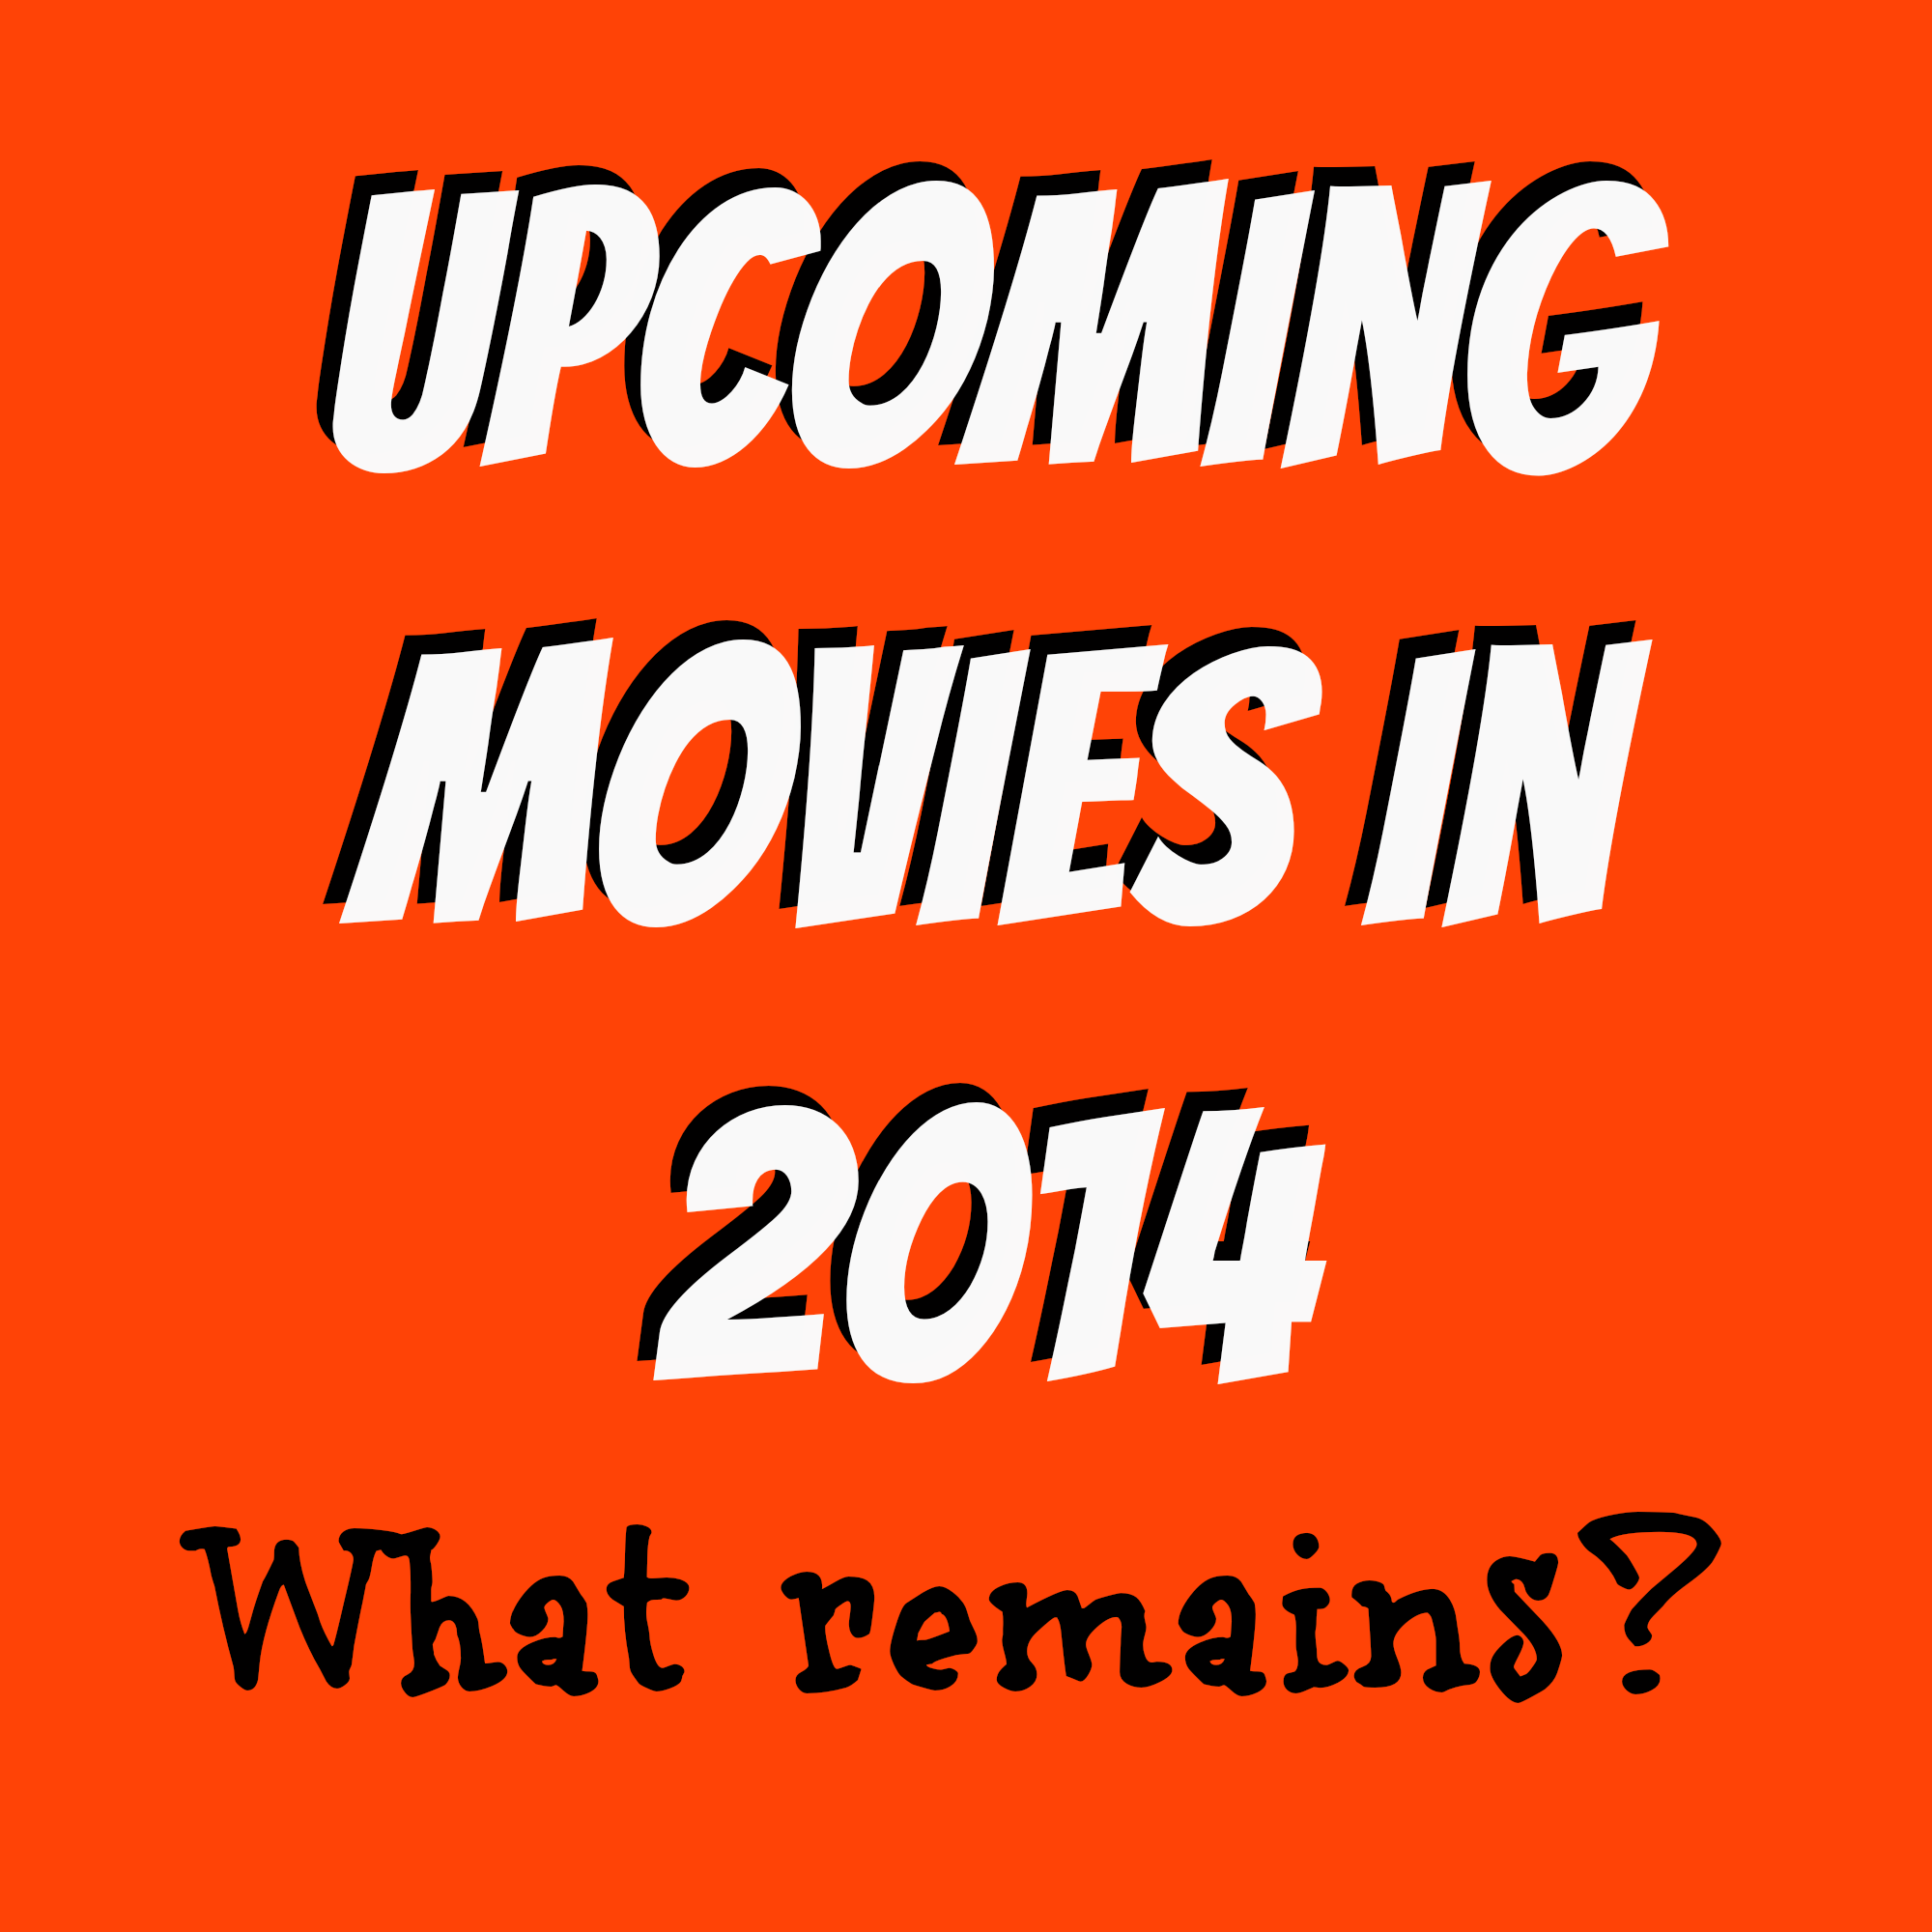 Upcoming movies in 2014: What remains?